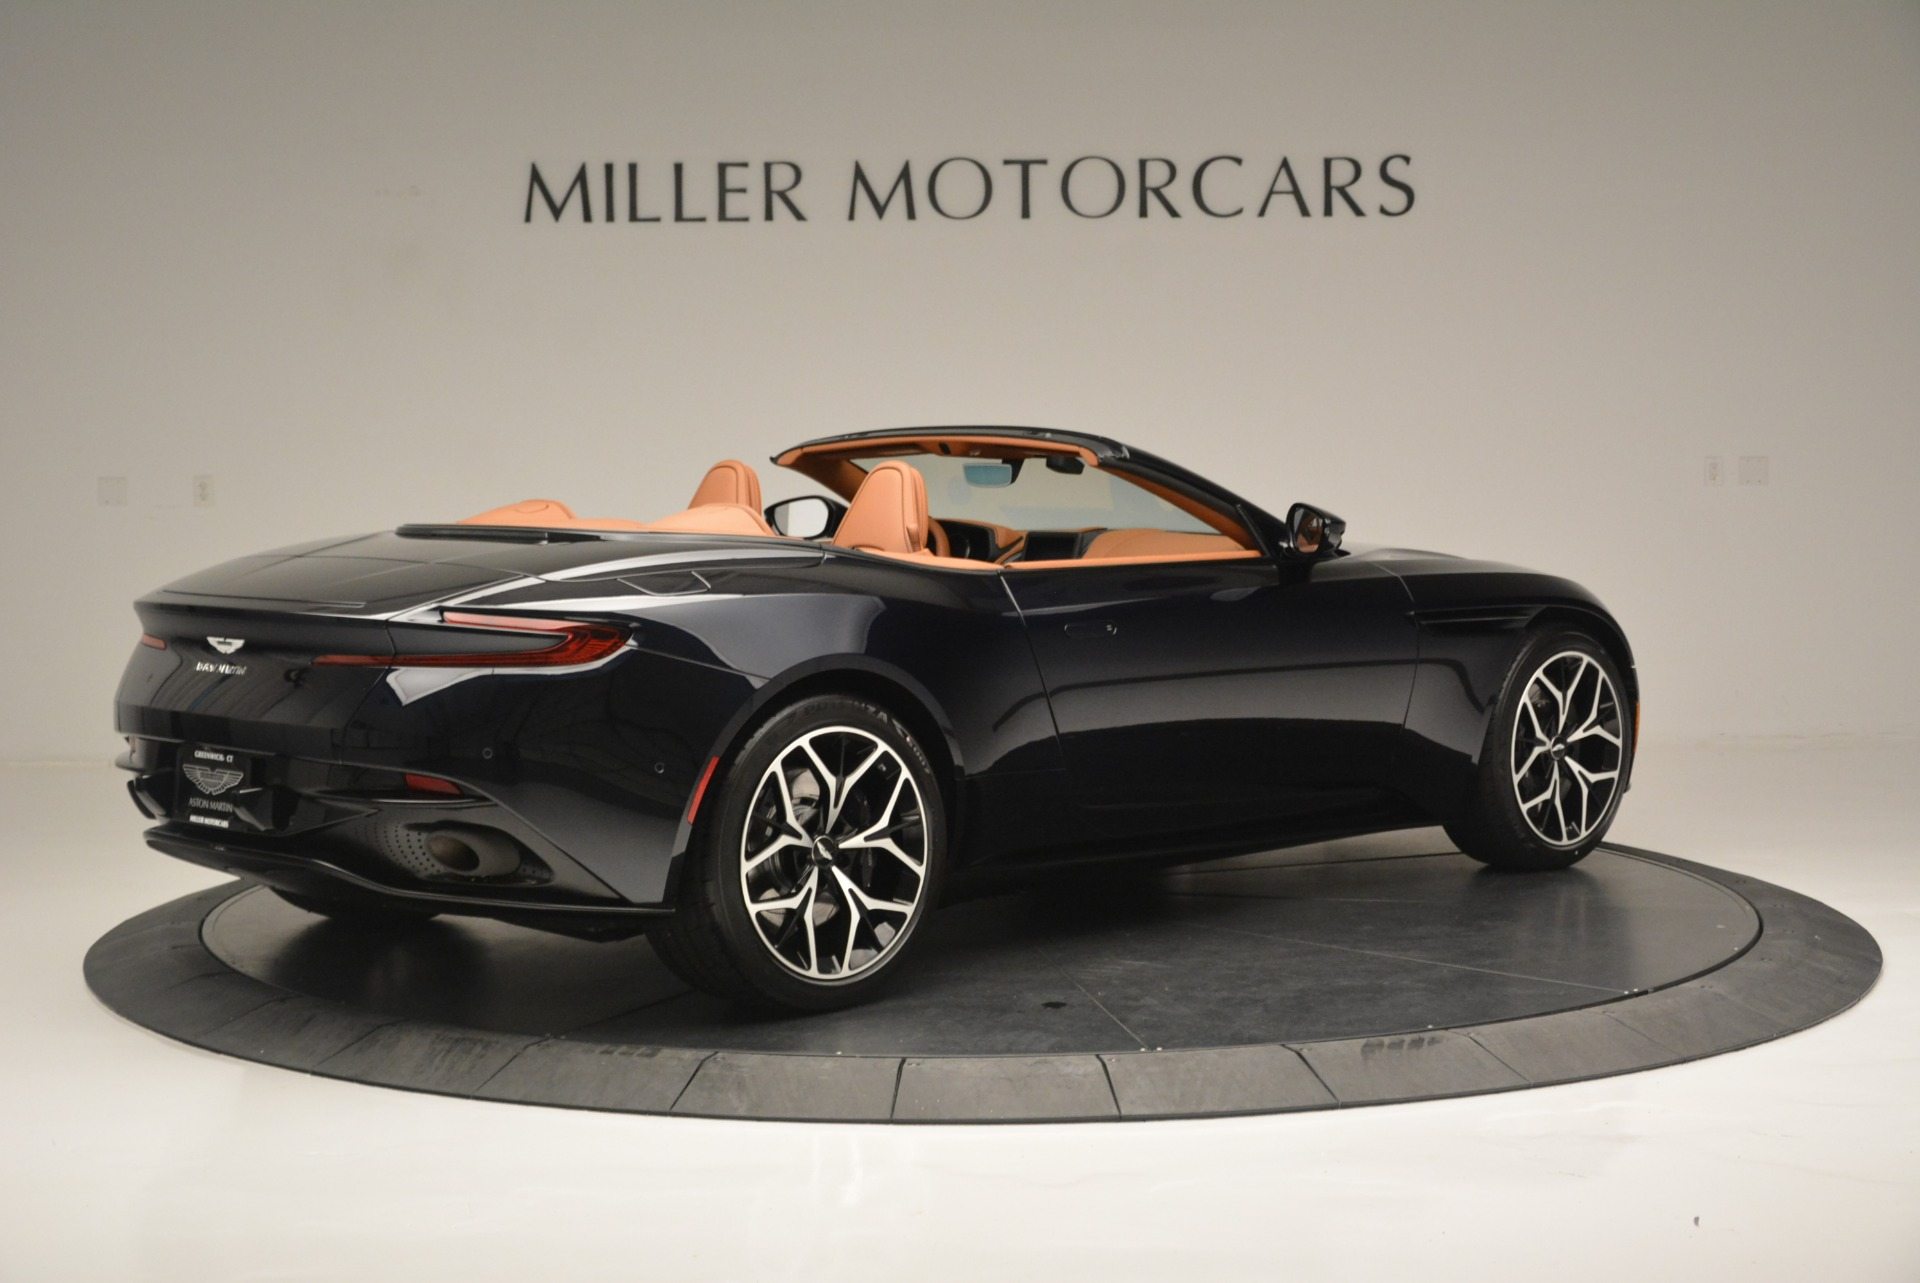 New 2019 Aston Martin DB11 Volante Volante For Sale In Westport, CT 2450_p8